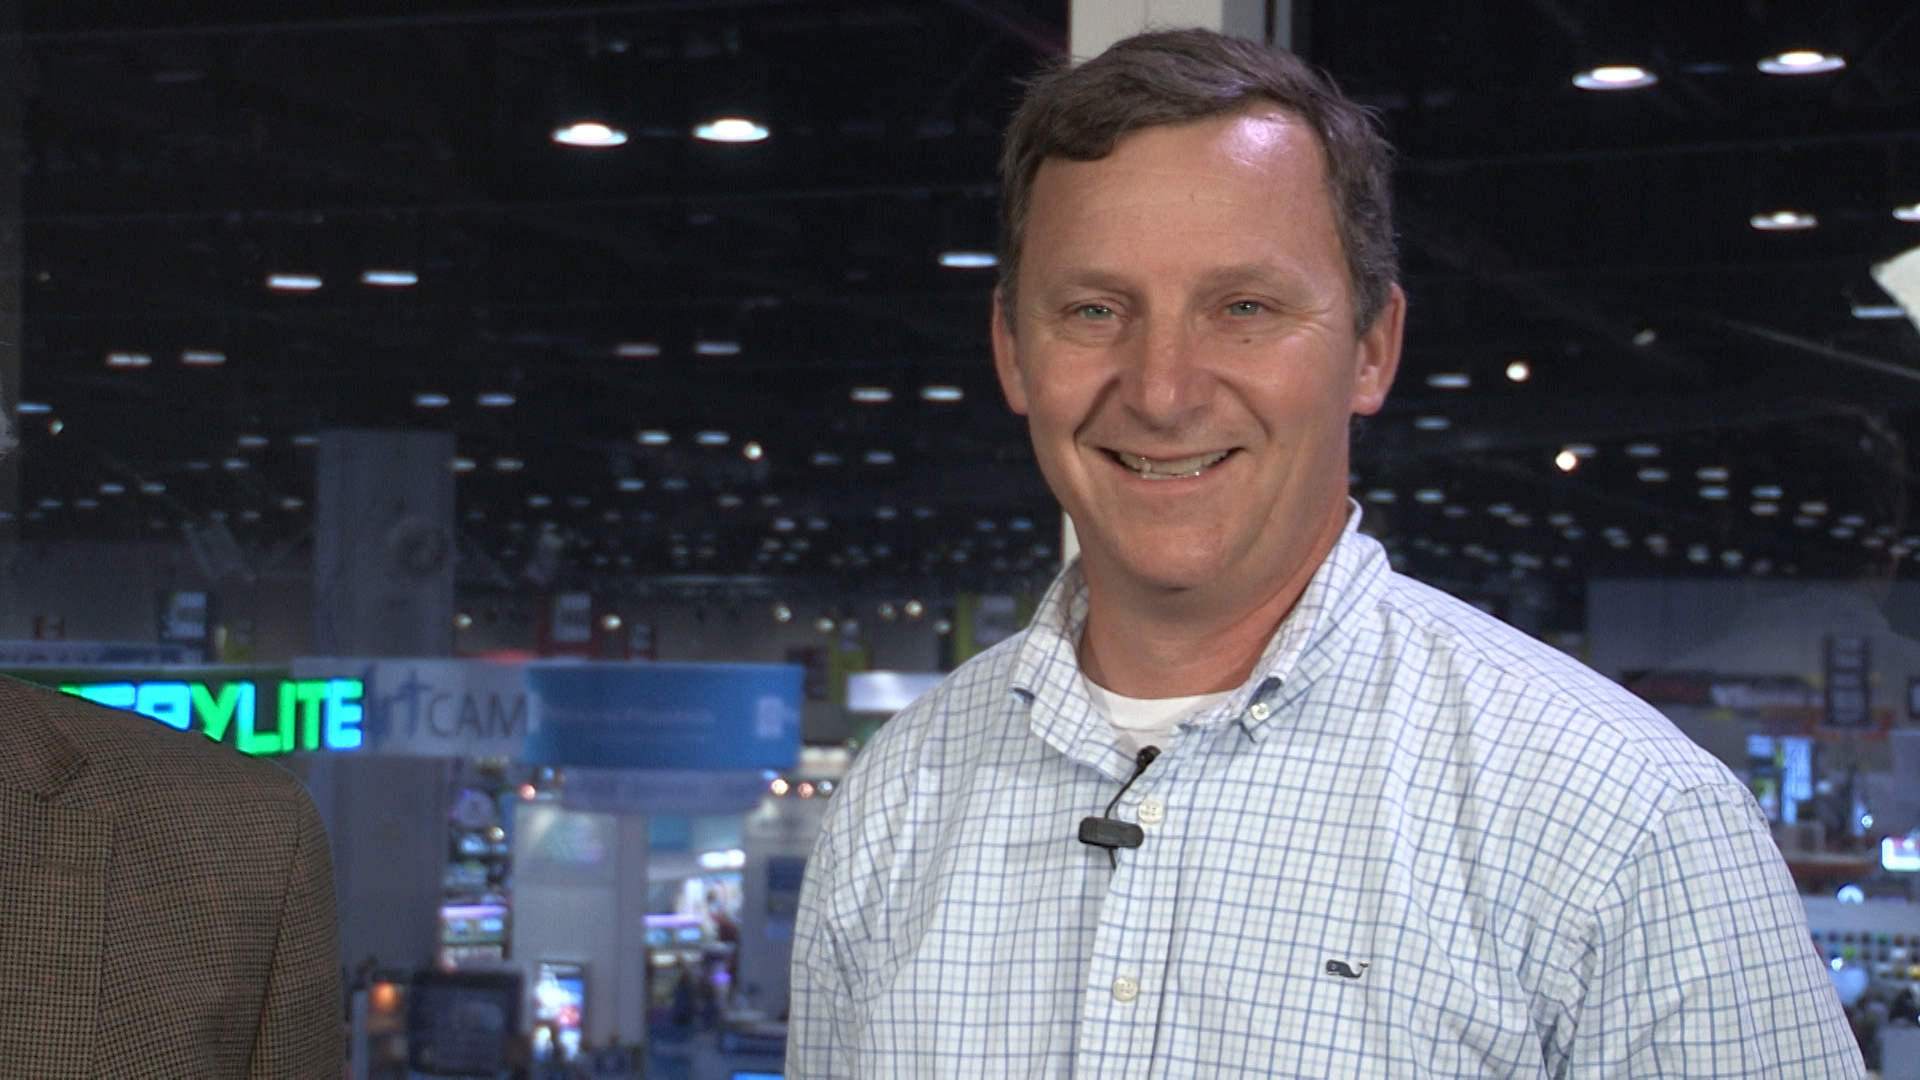 Video preview: BleuPrint Creative's Scott Donovan on Digital Textile Printing